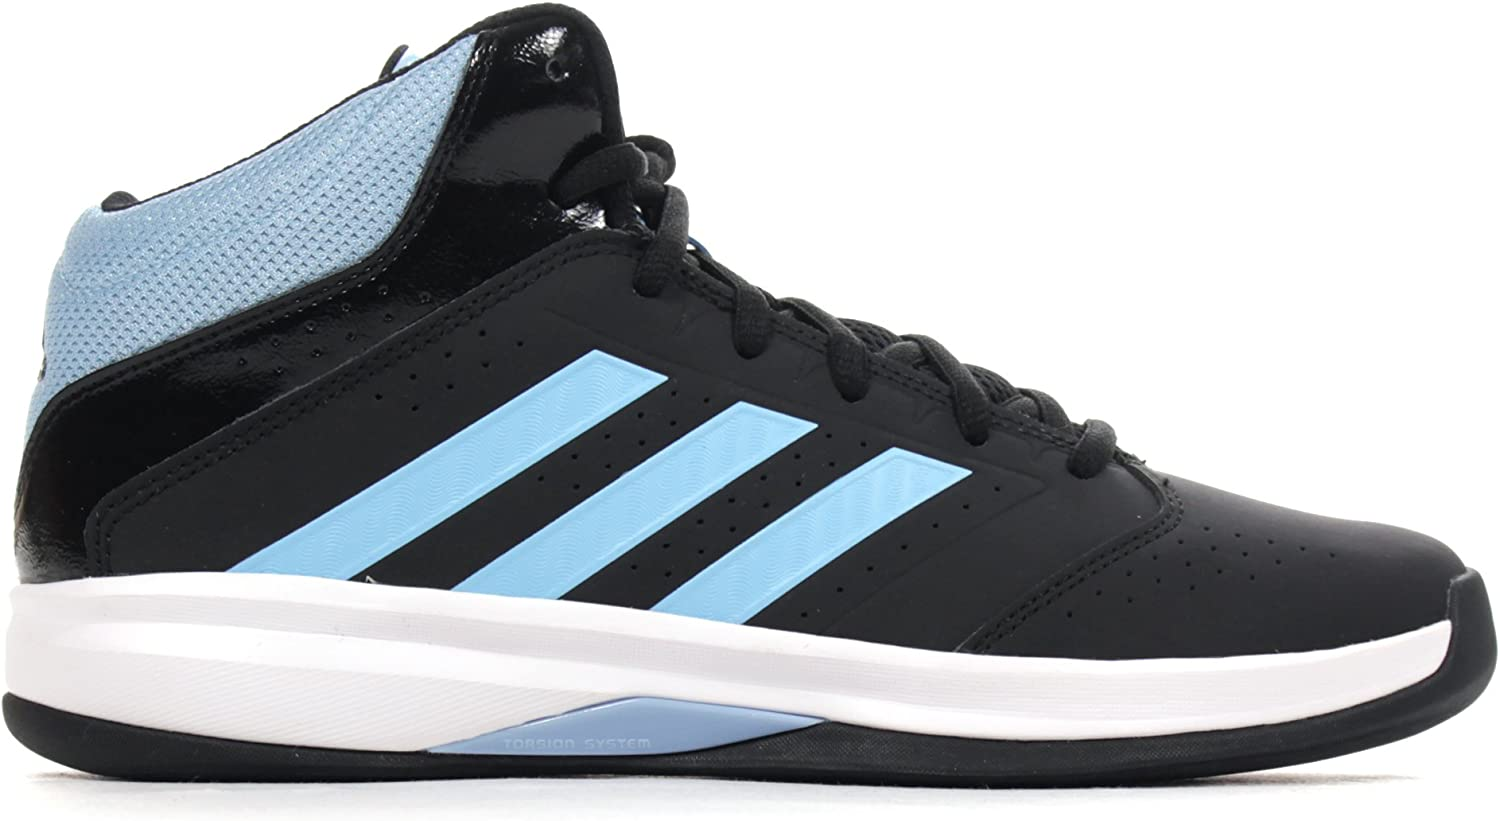 Adidas Isolation 2 Mens Basketball High Top Trainer shoes Black  bluee - UK 11